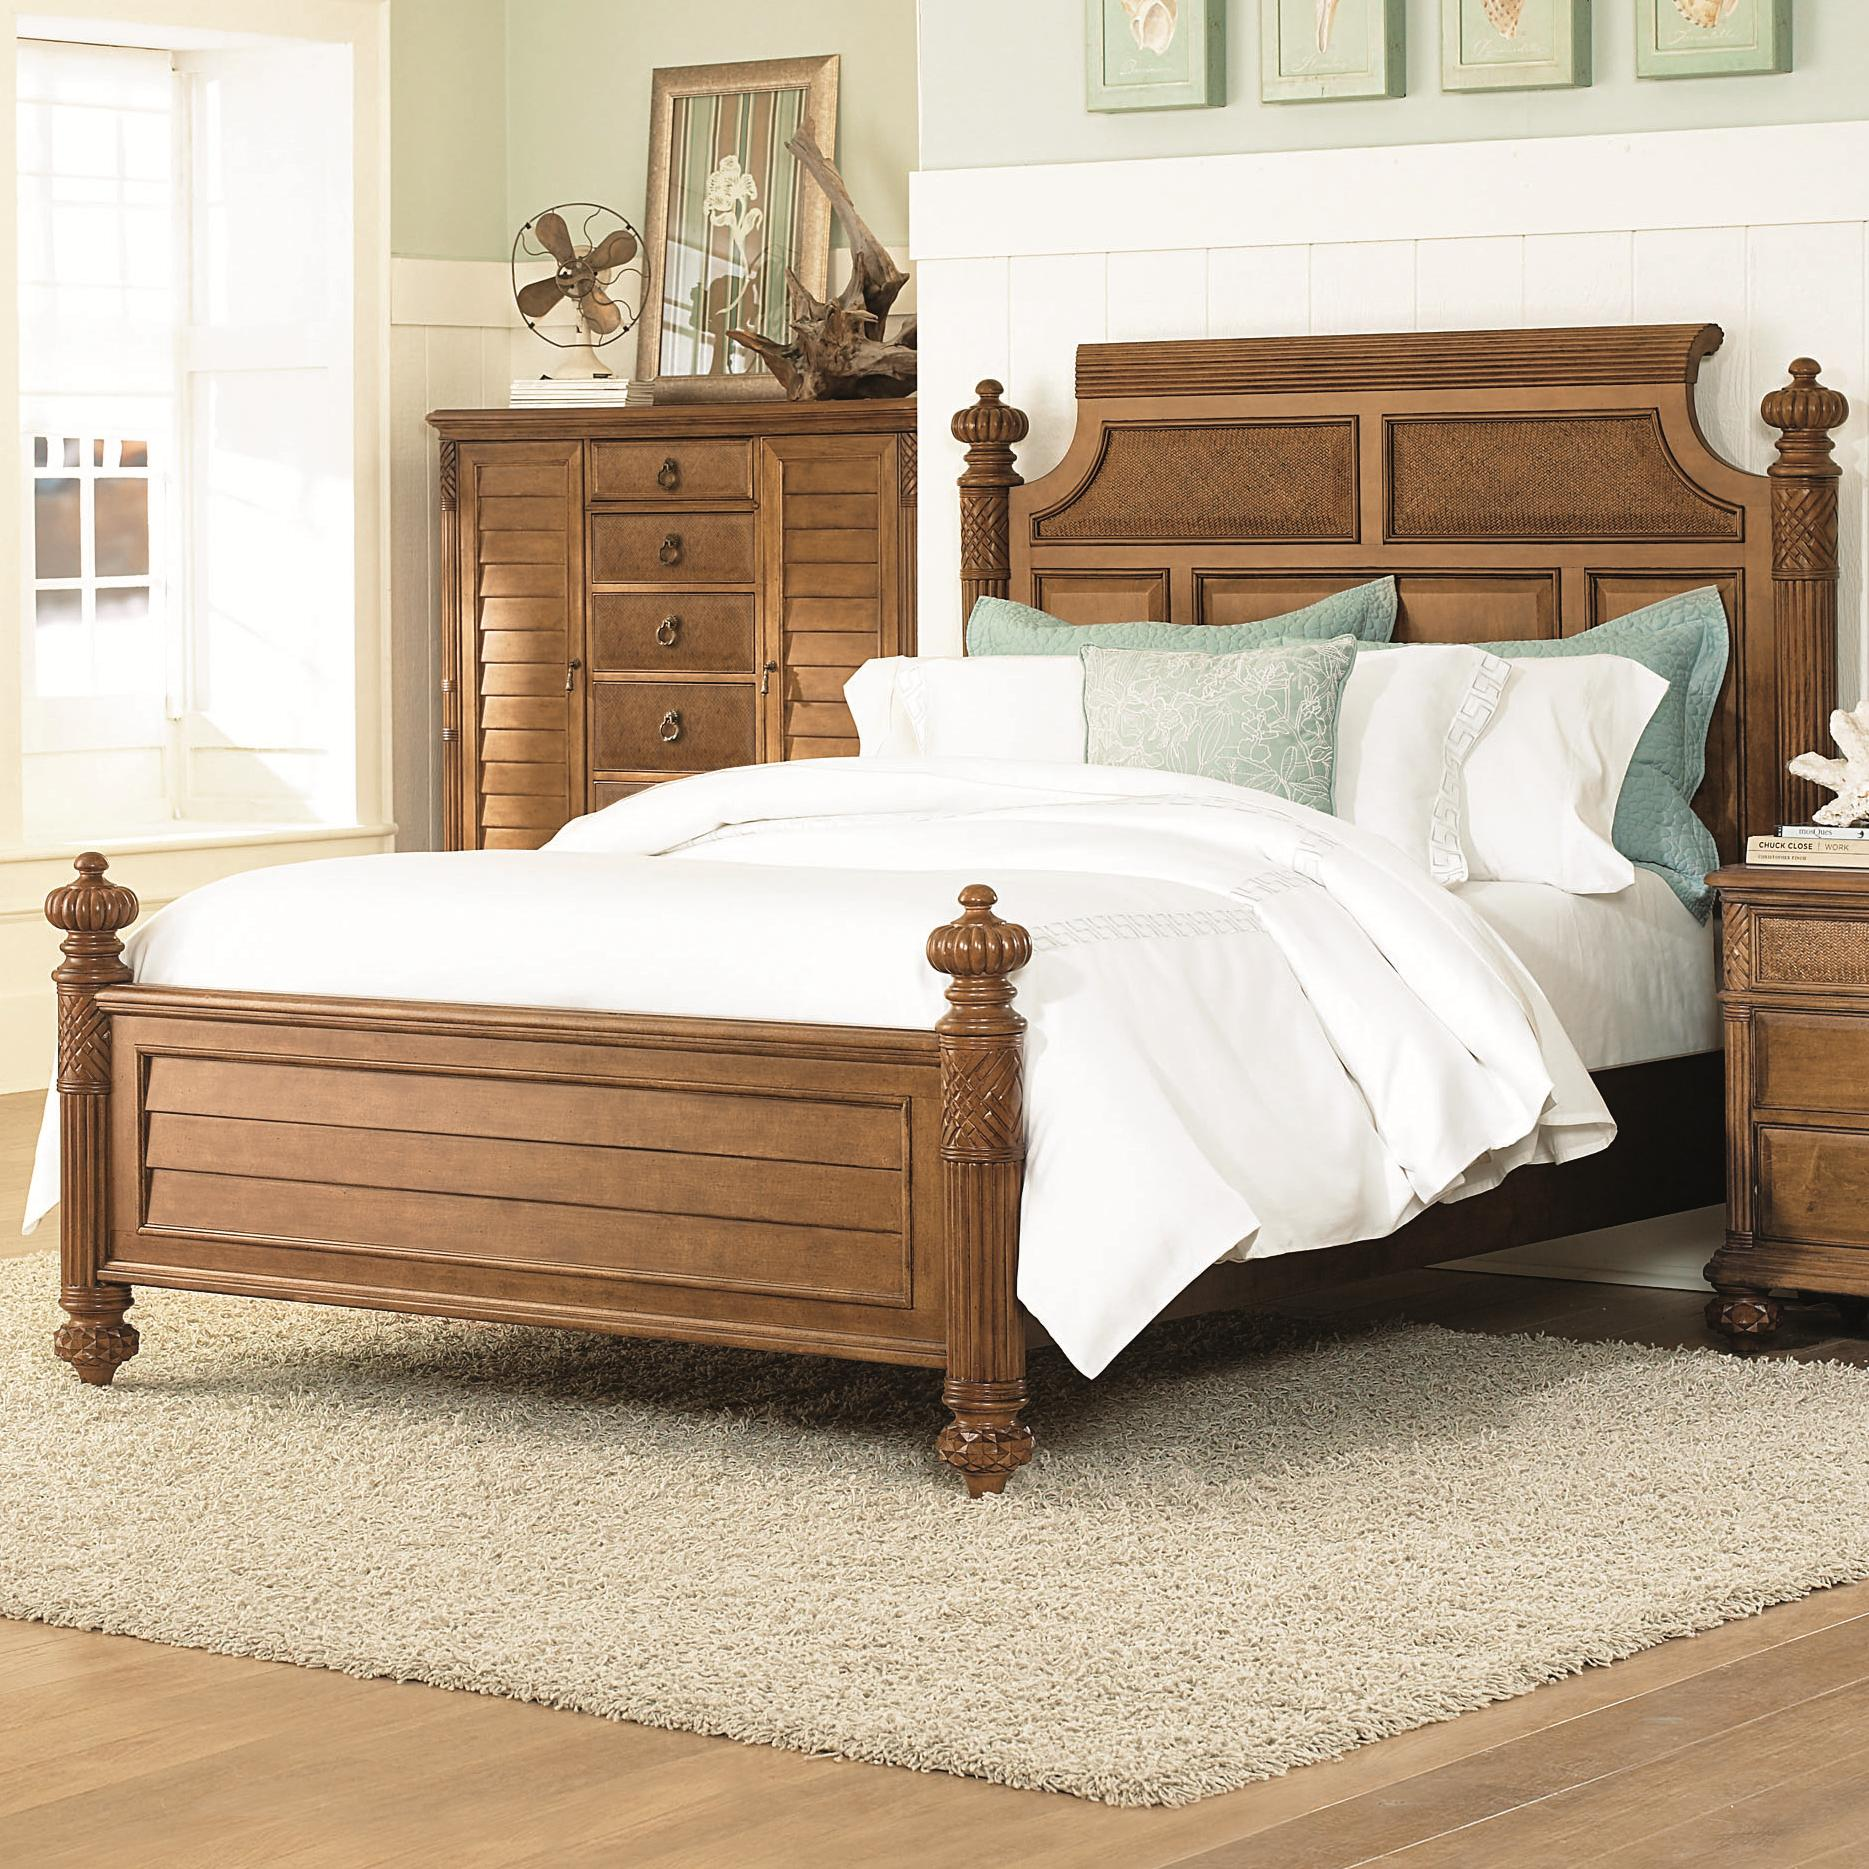 Queen size island headboard footboard bed with woven for Queen size footboard